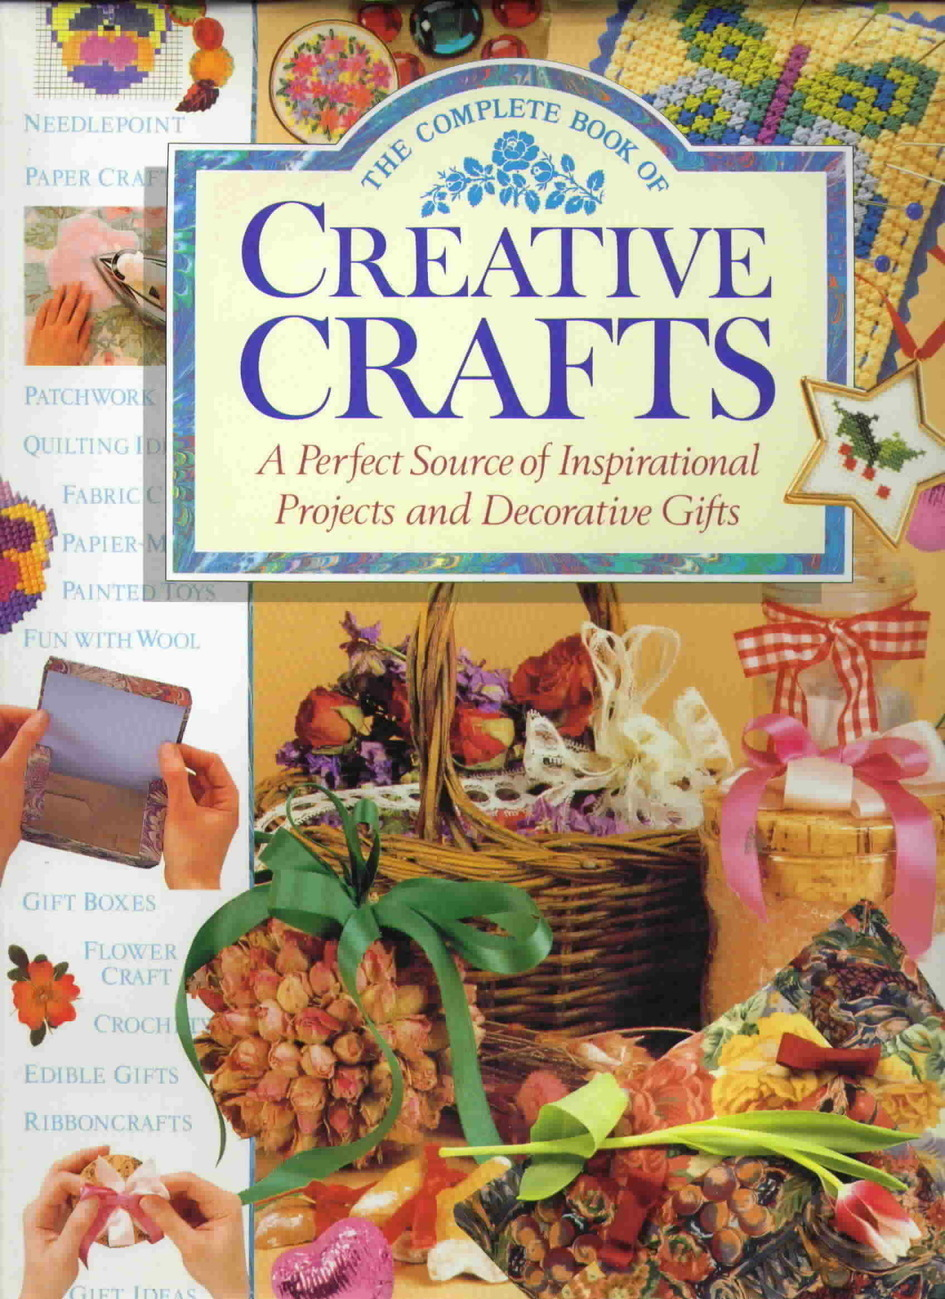 The complete book of creative crafts